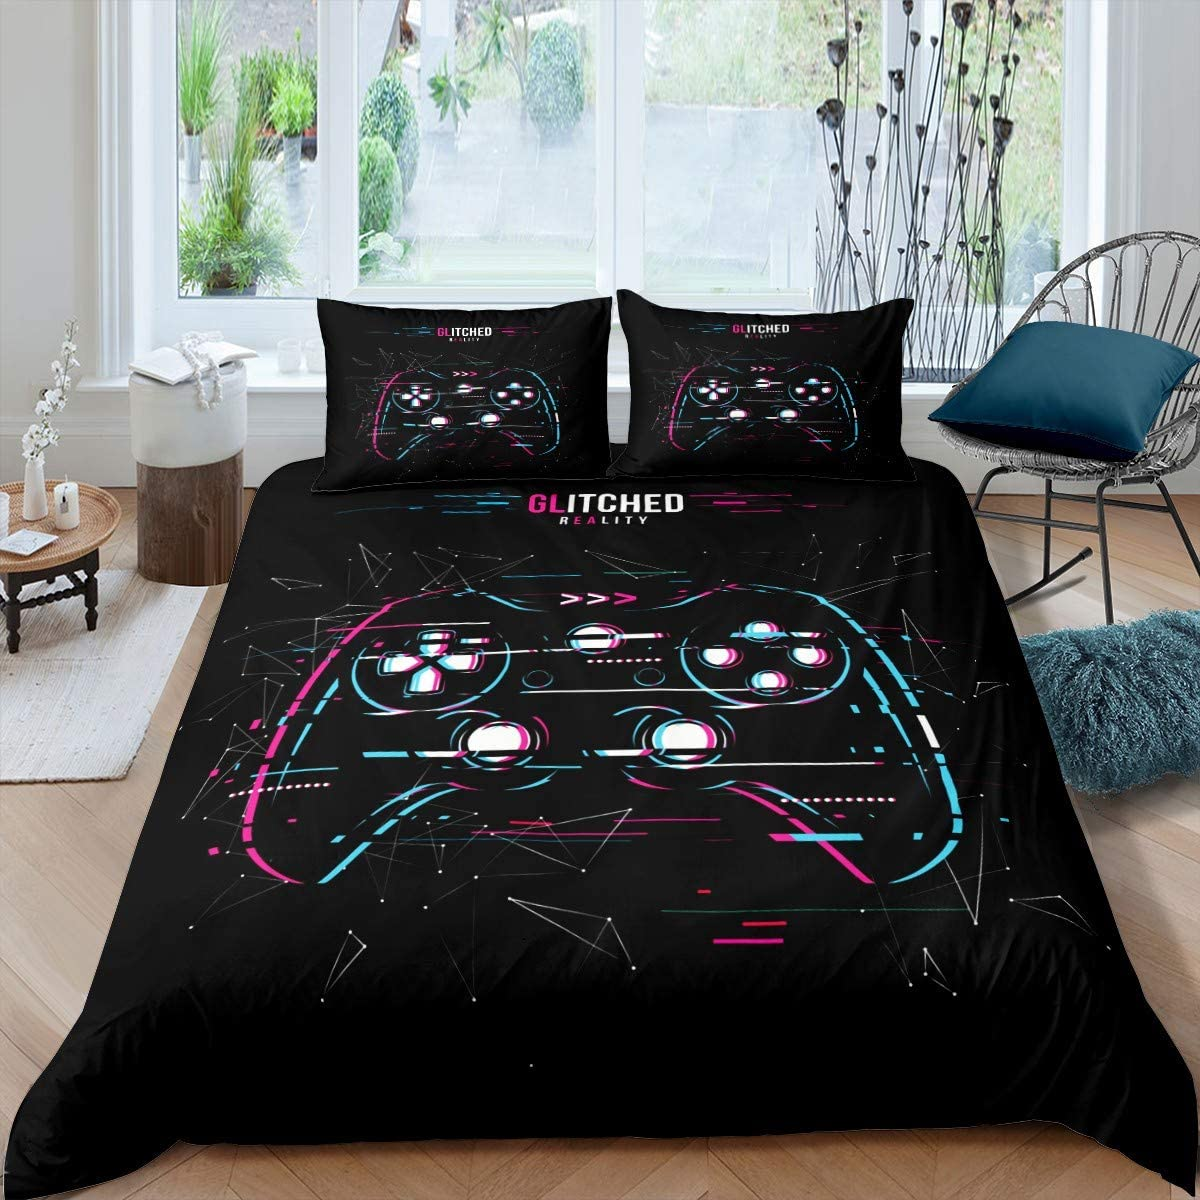 Boys Gamepad Bedding Set for Kids Gamer Gaming Bedding Twin Size, Game Controller Comforter Cover Teens Girls Adult Modern Youth Duvet Cover Games Console Bedspread Cover Room Decor 2Pcs